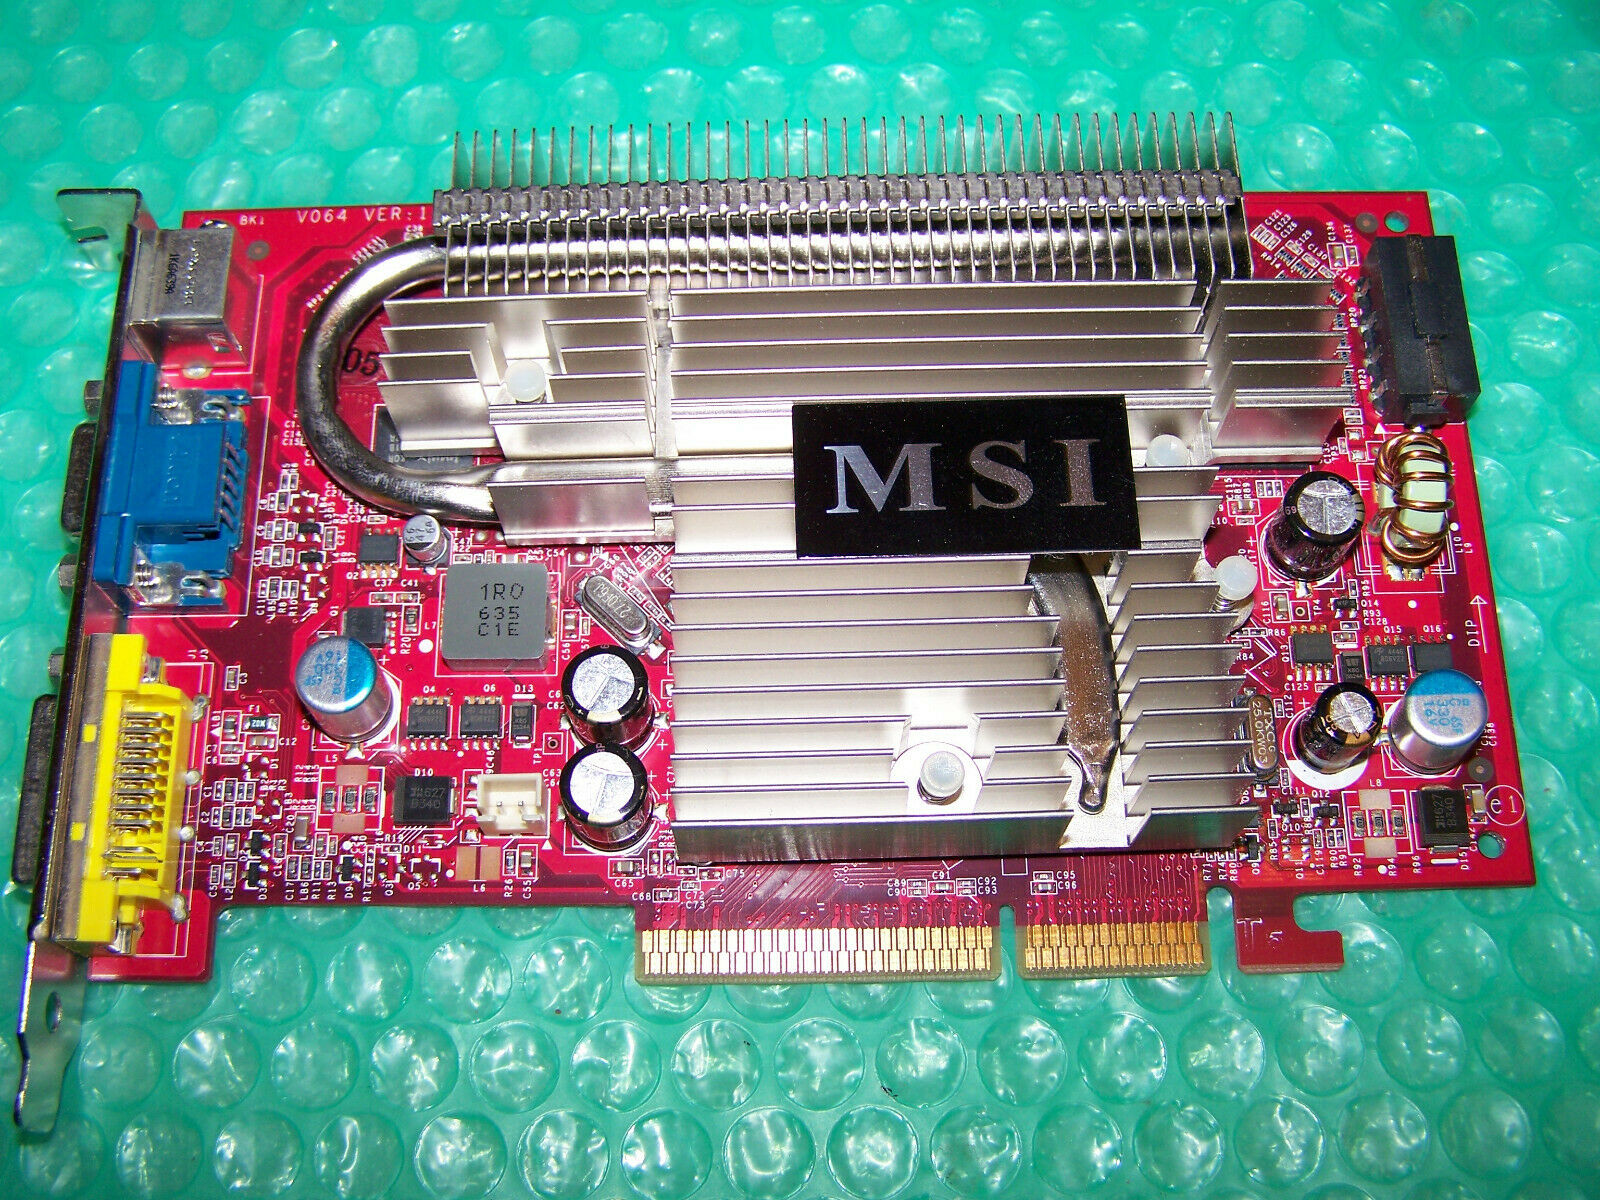 MSI GeForce 7600GS 512MB AGP graphics card, Win 7/8 compatible, Tested